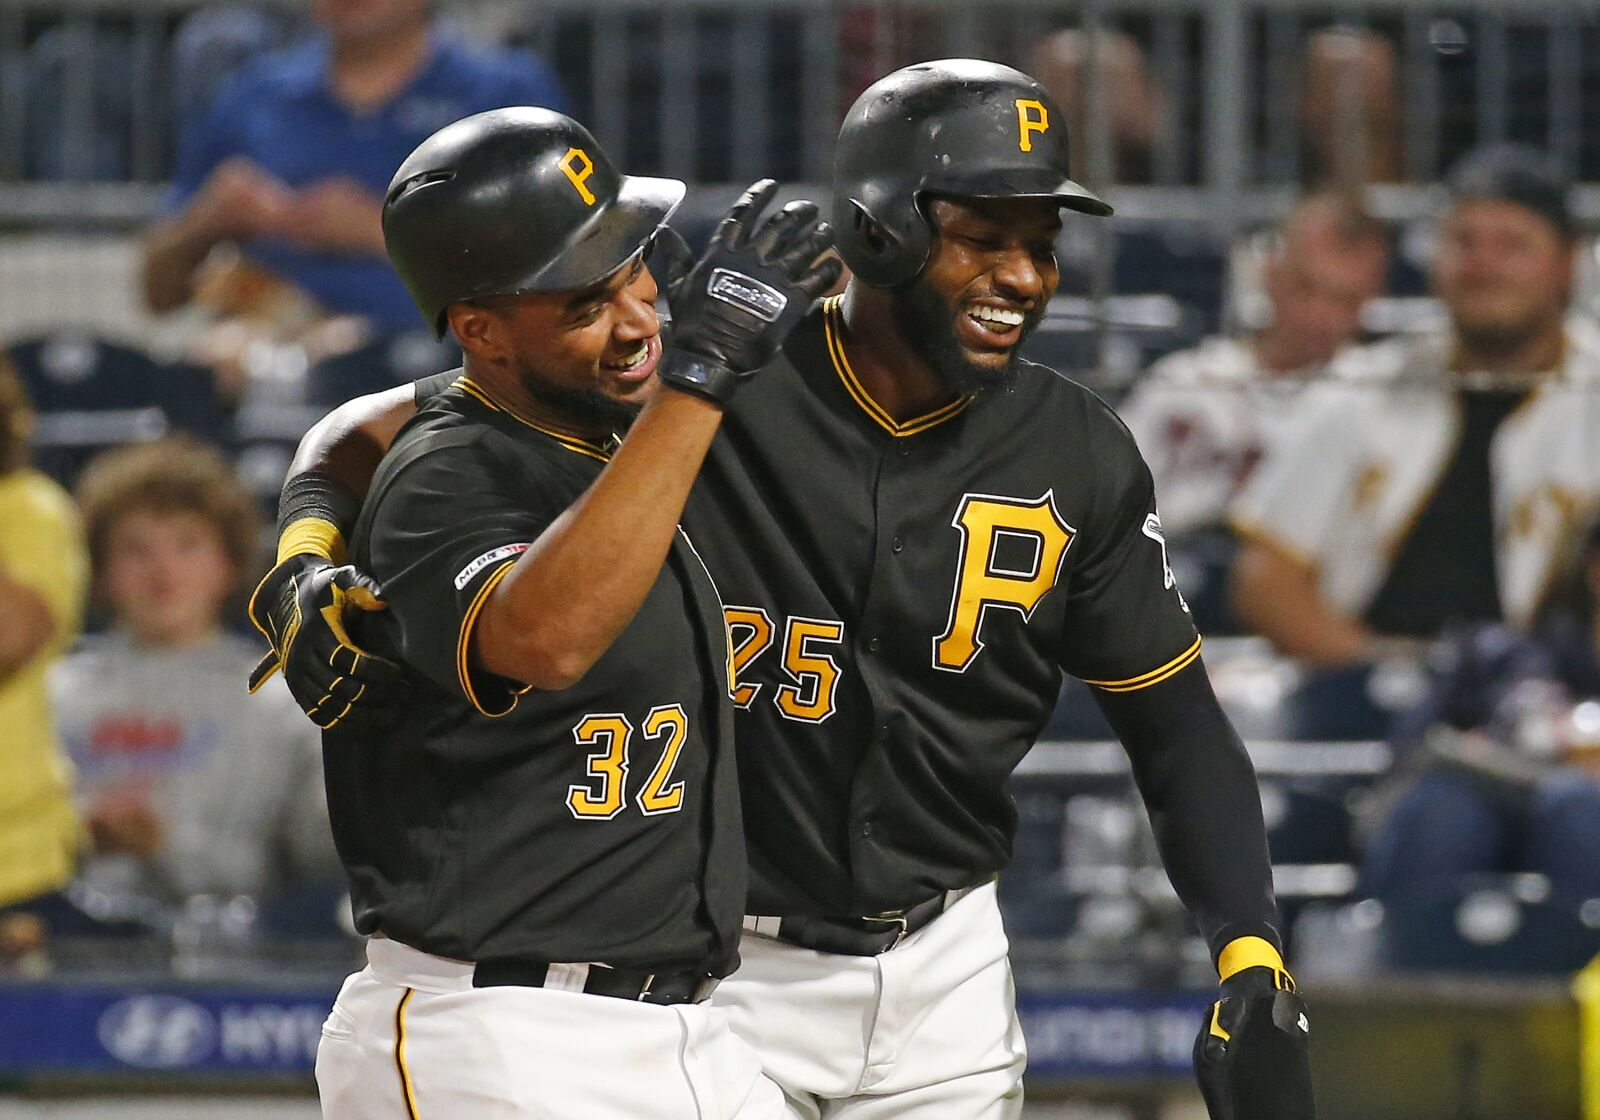 Pittsburgh Pirates home stand report card for 5/30-6/6